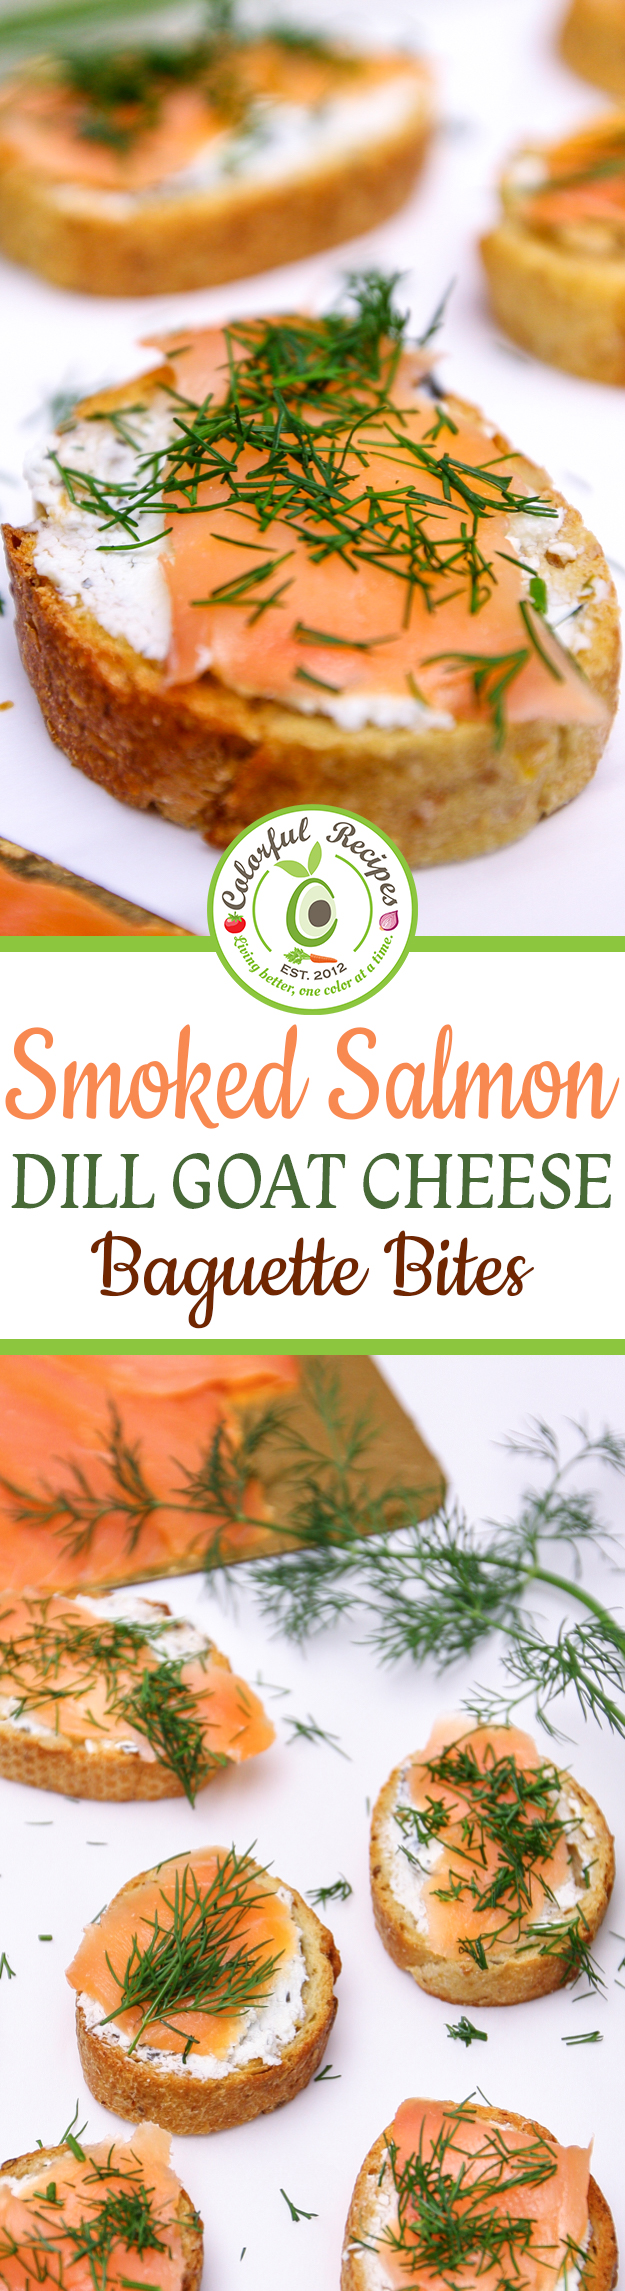 Smoked Salmon Dill Goat Cheese Baguette Bites Holiday Finger Foods Appetizer Ideas